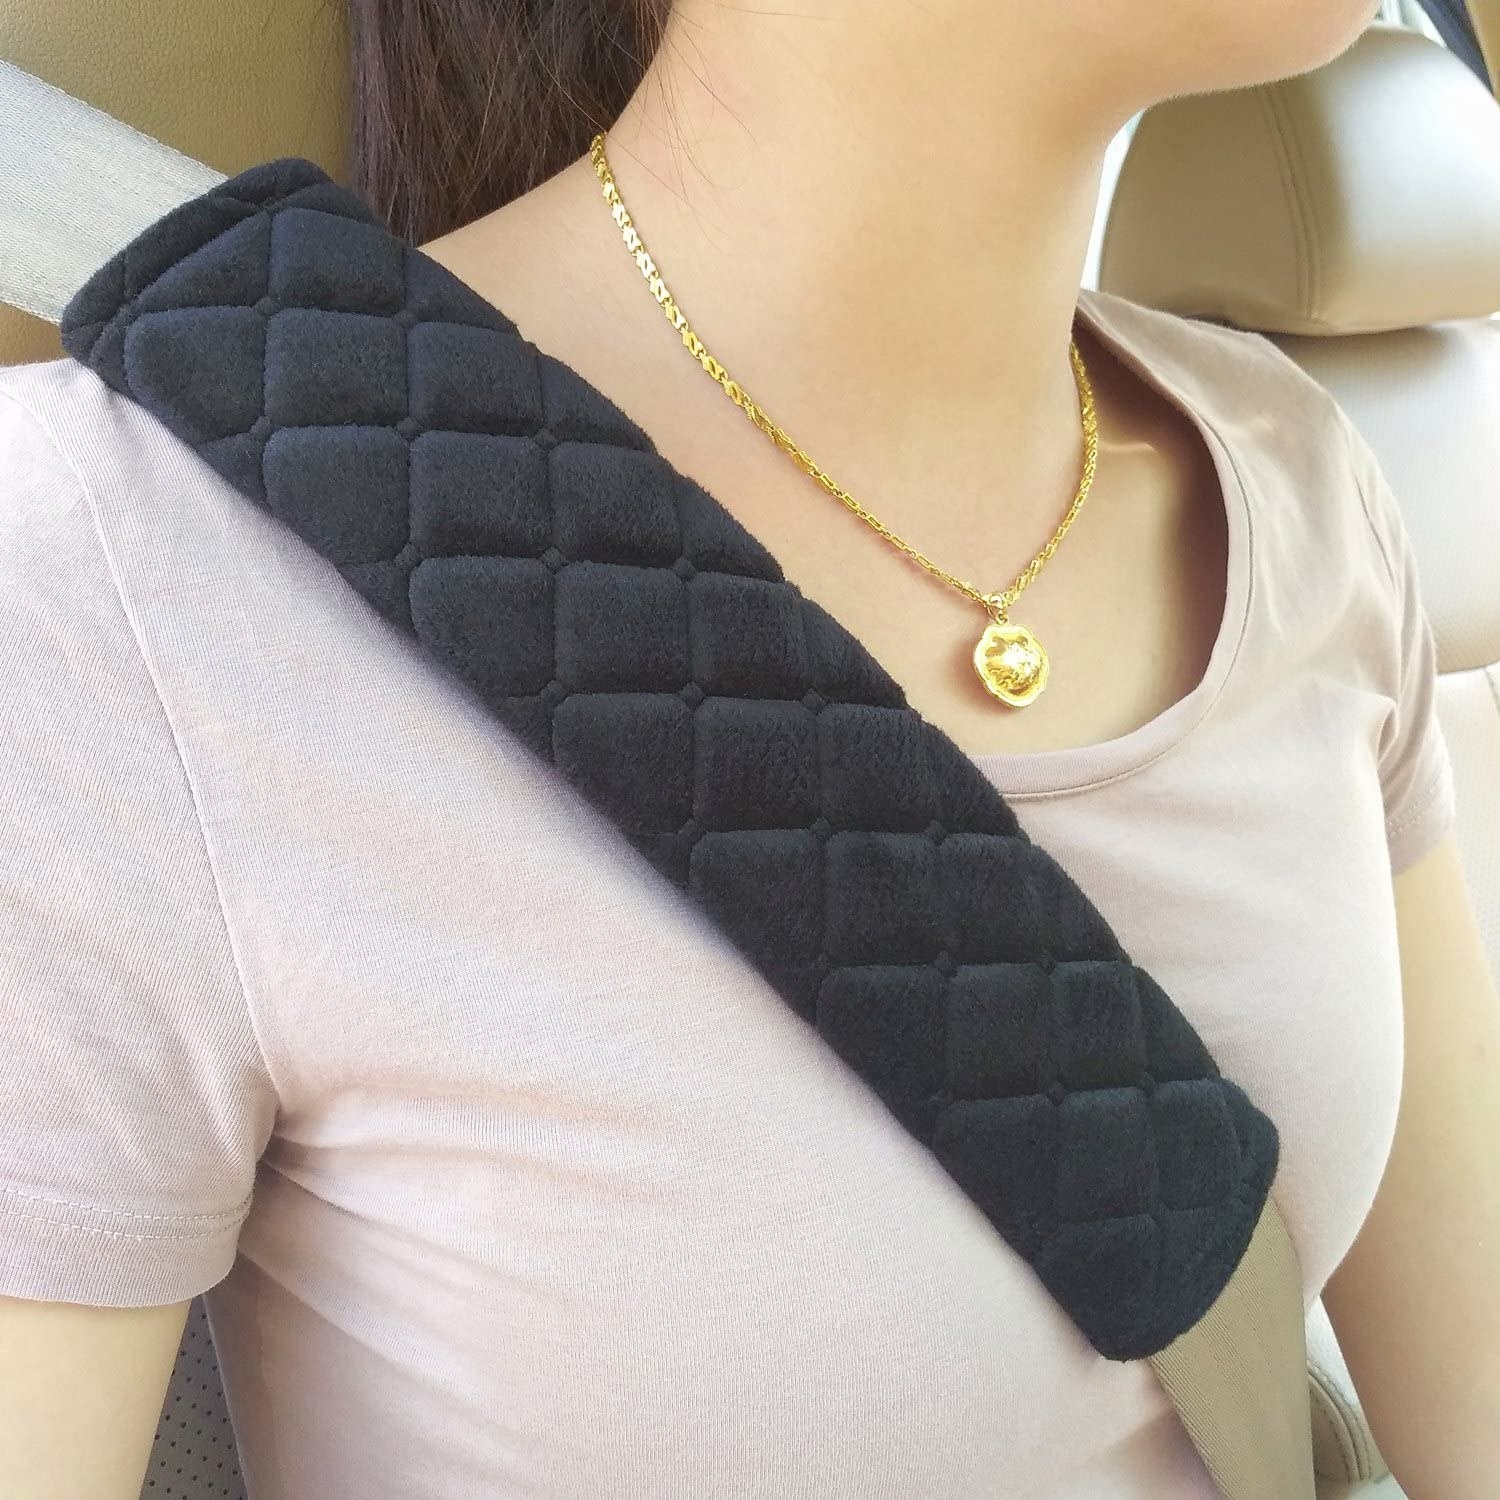 The padded seatbelt cover